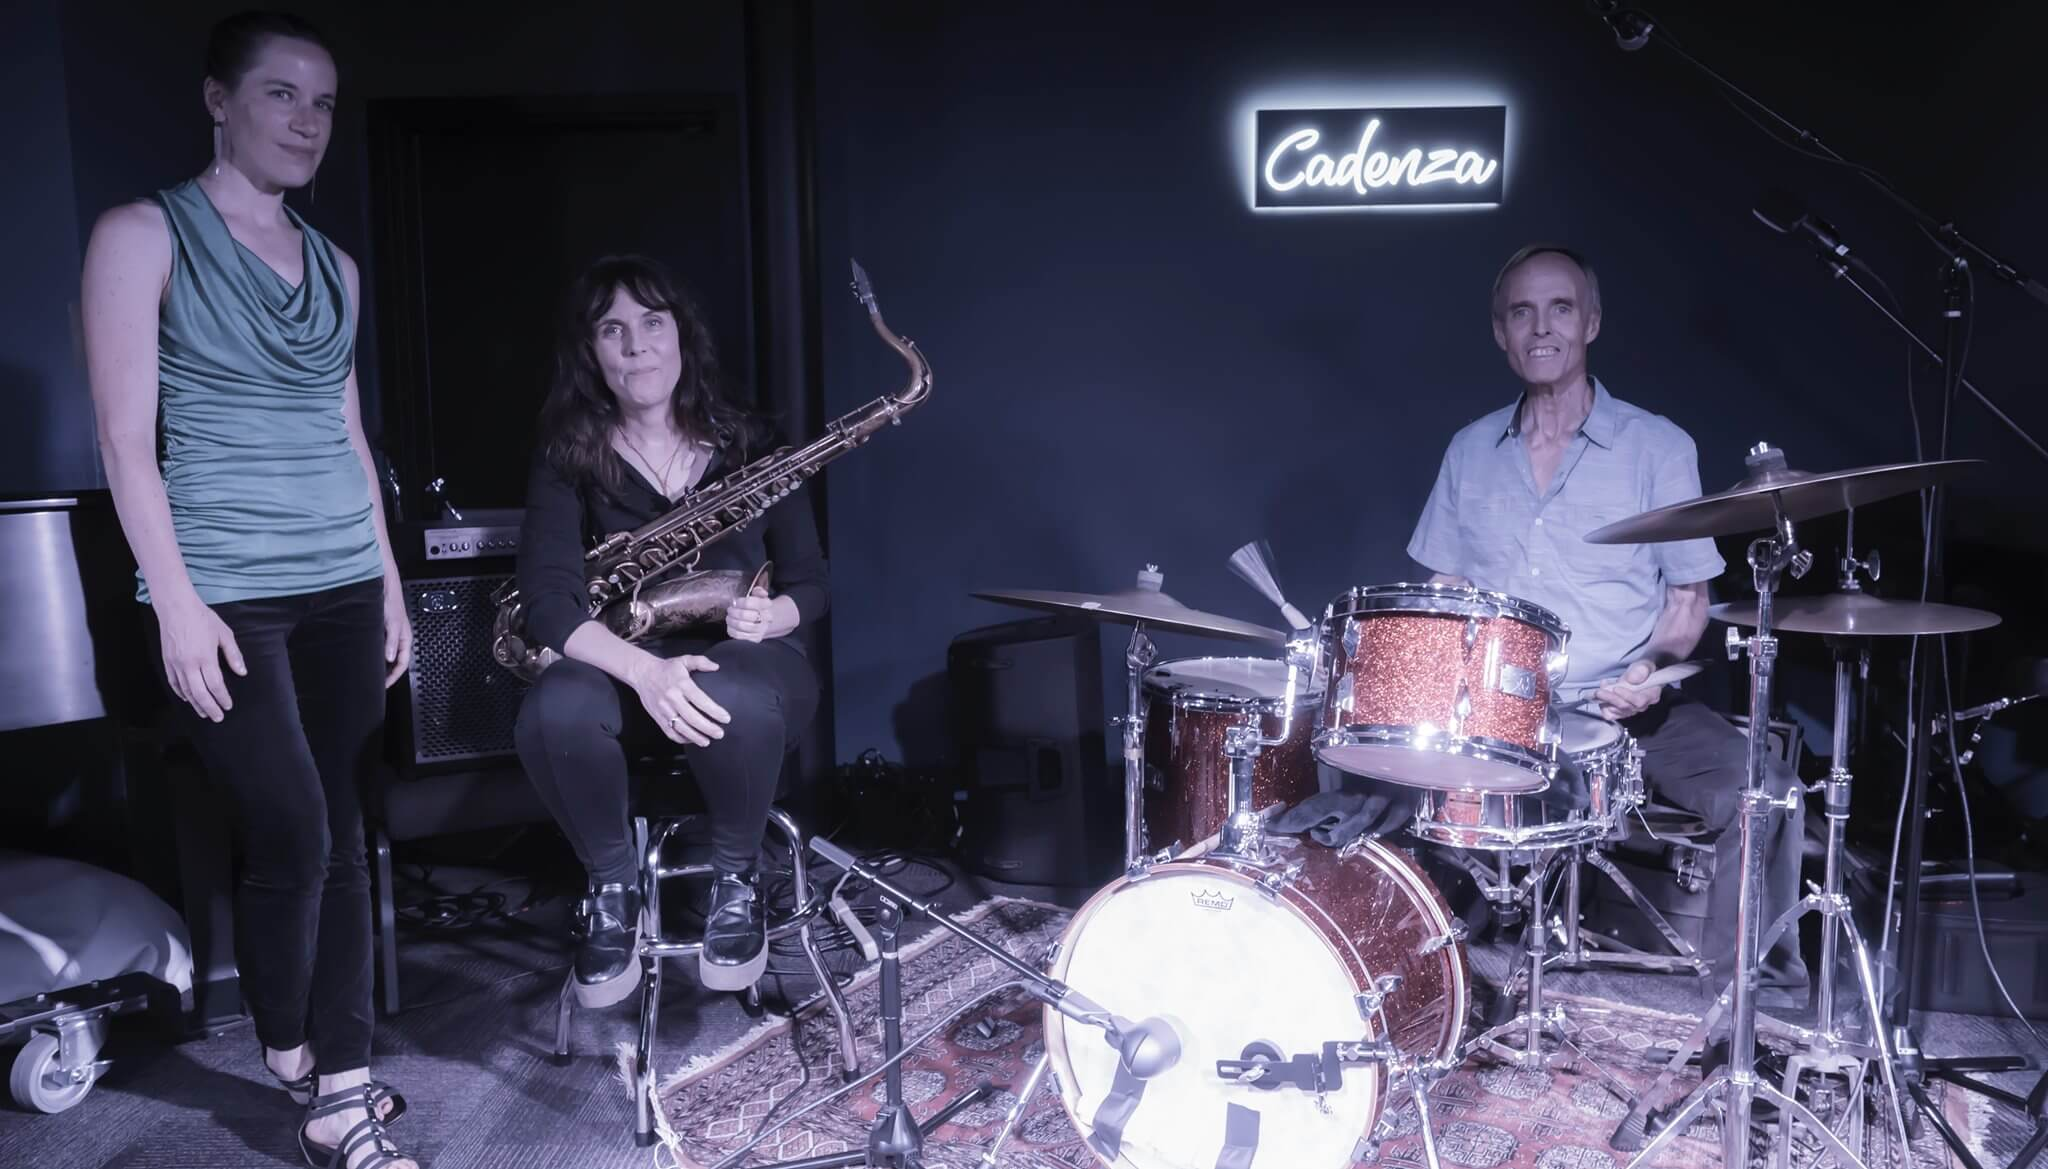 Cadenza - Bess Jacques & The Strays